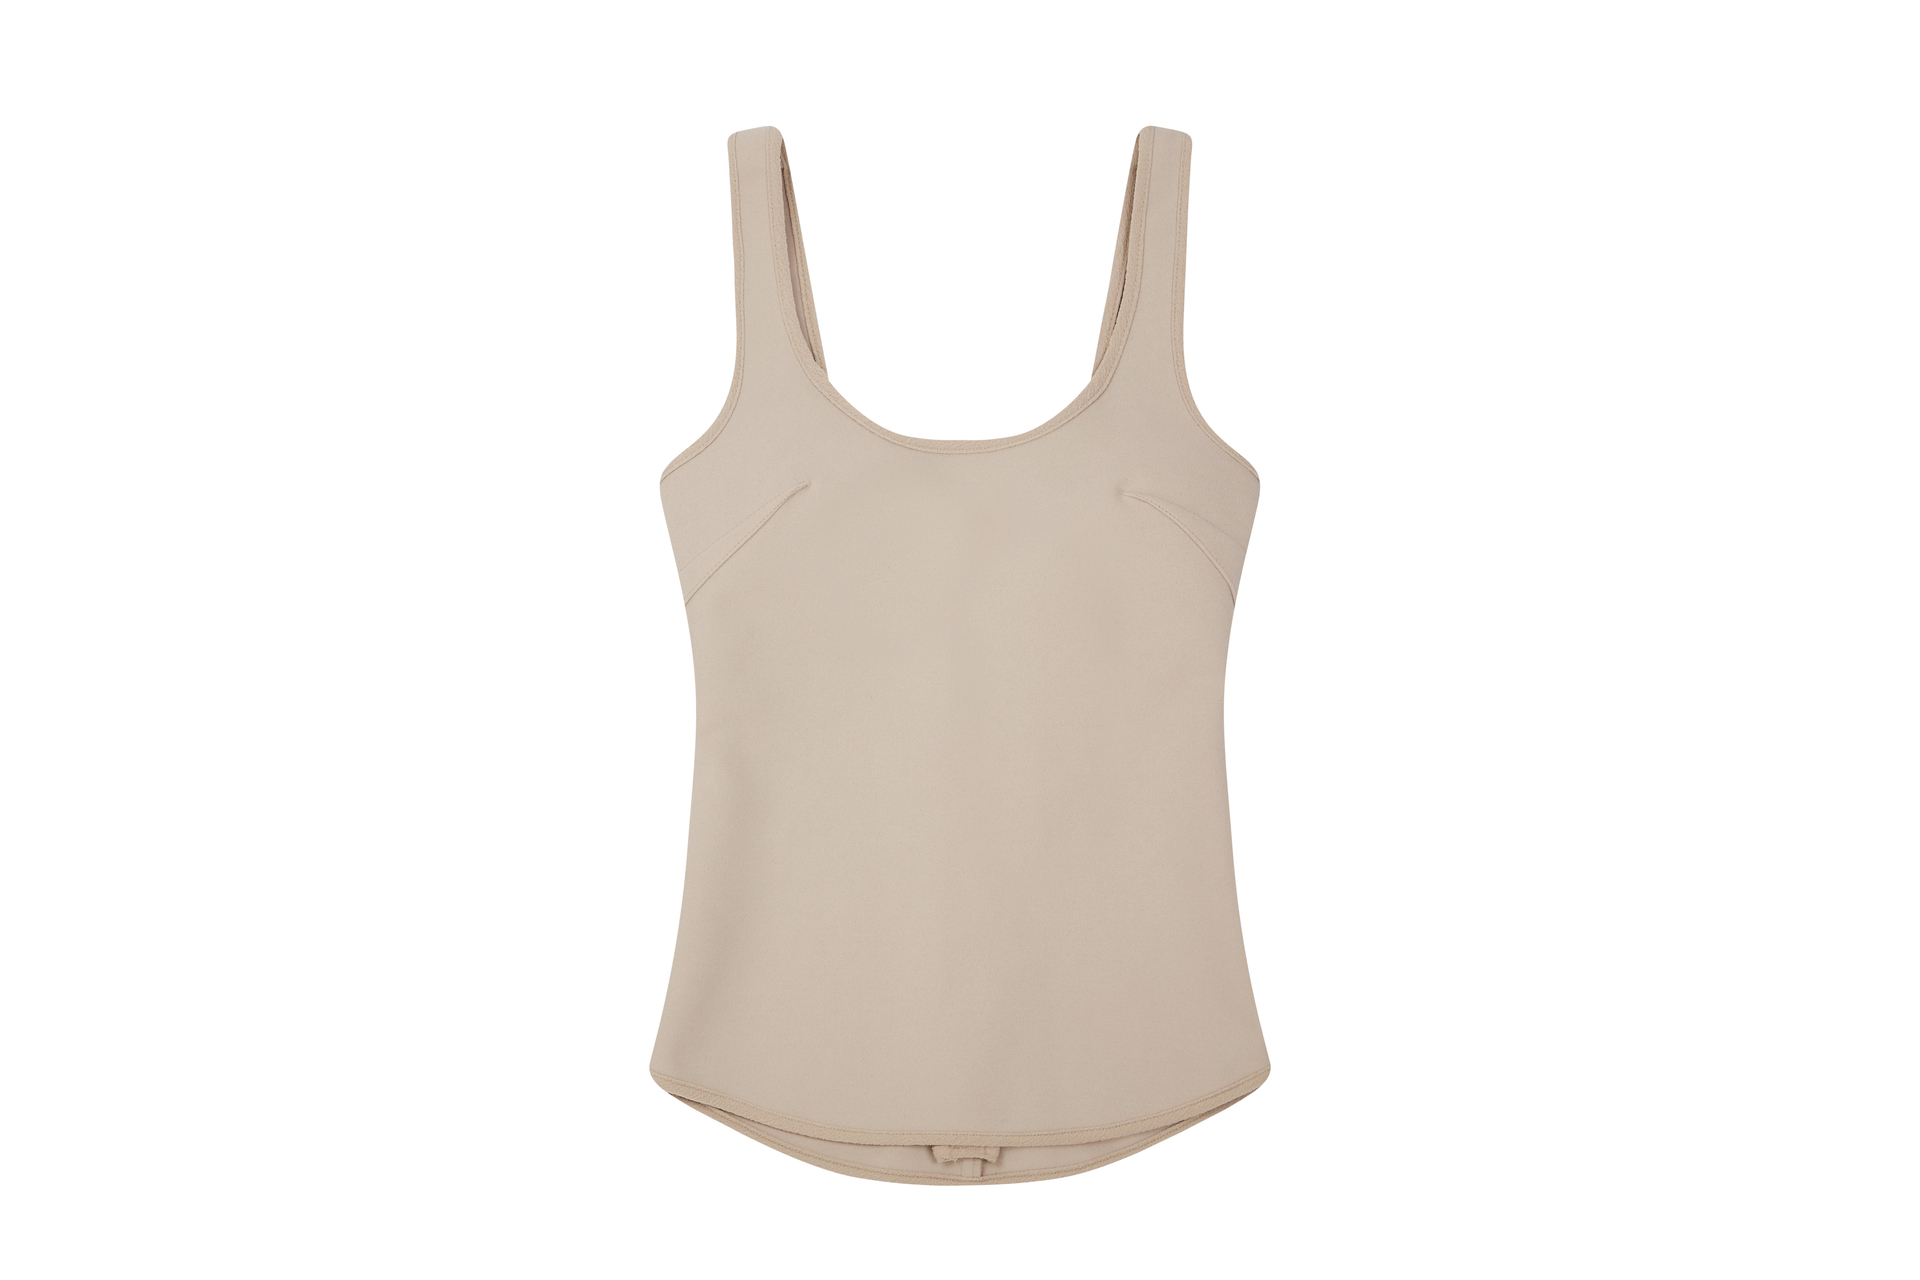 72dpi-239202bac2-26.-BY-JOHNNY,-Bonded-Structure-Zip-Top-Nude,-180,-www.byjohnny.com.au